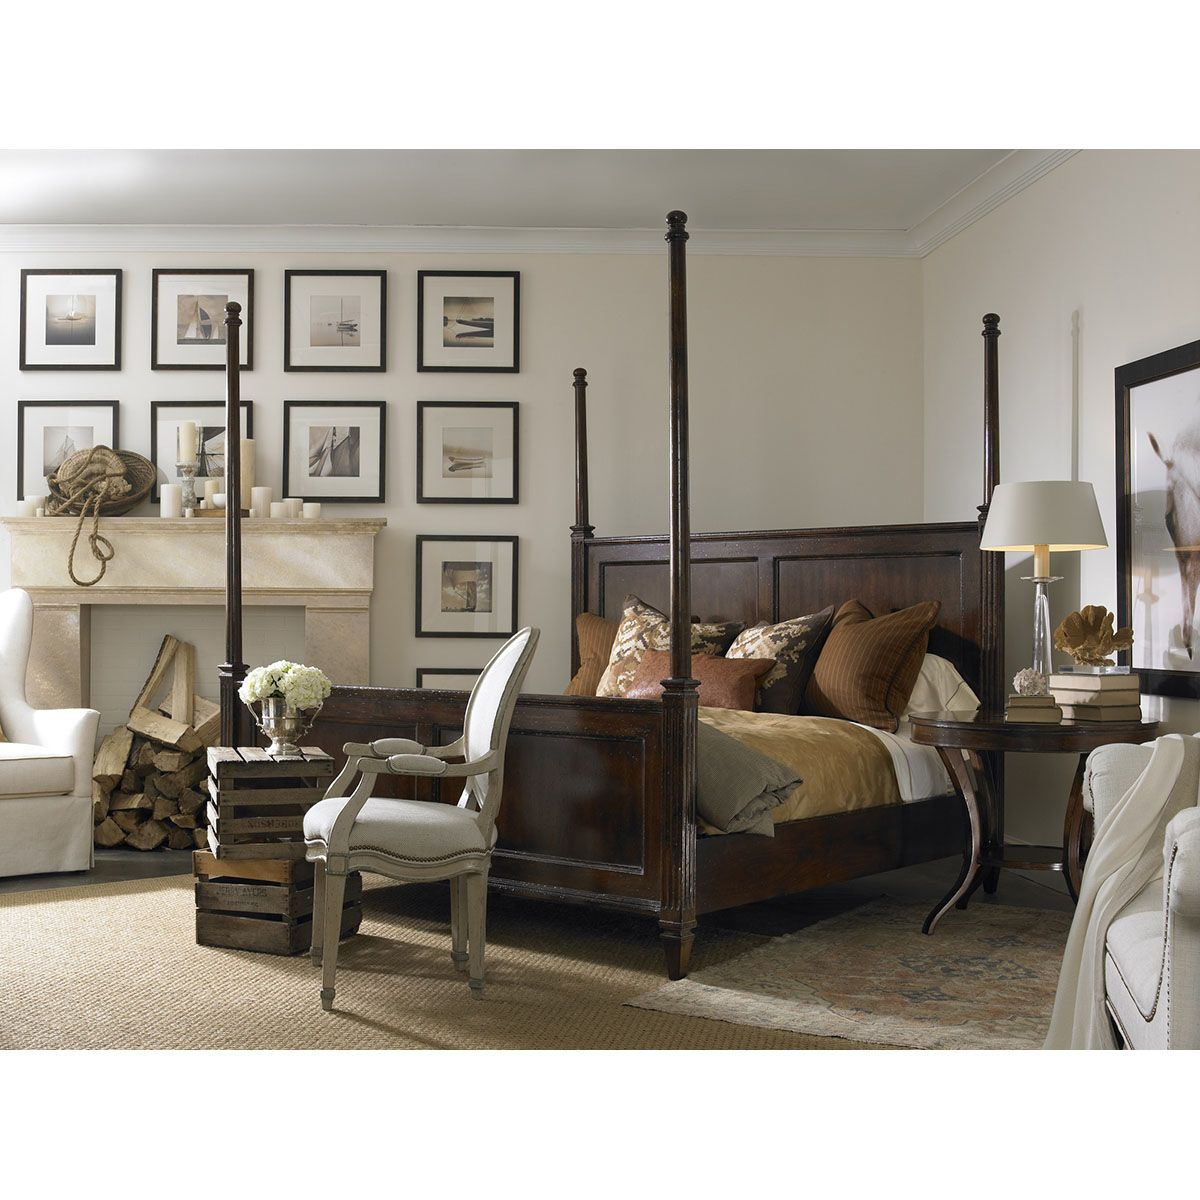 Hickory White King HiLo Poster Bed 86525 Furniture